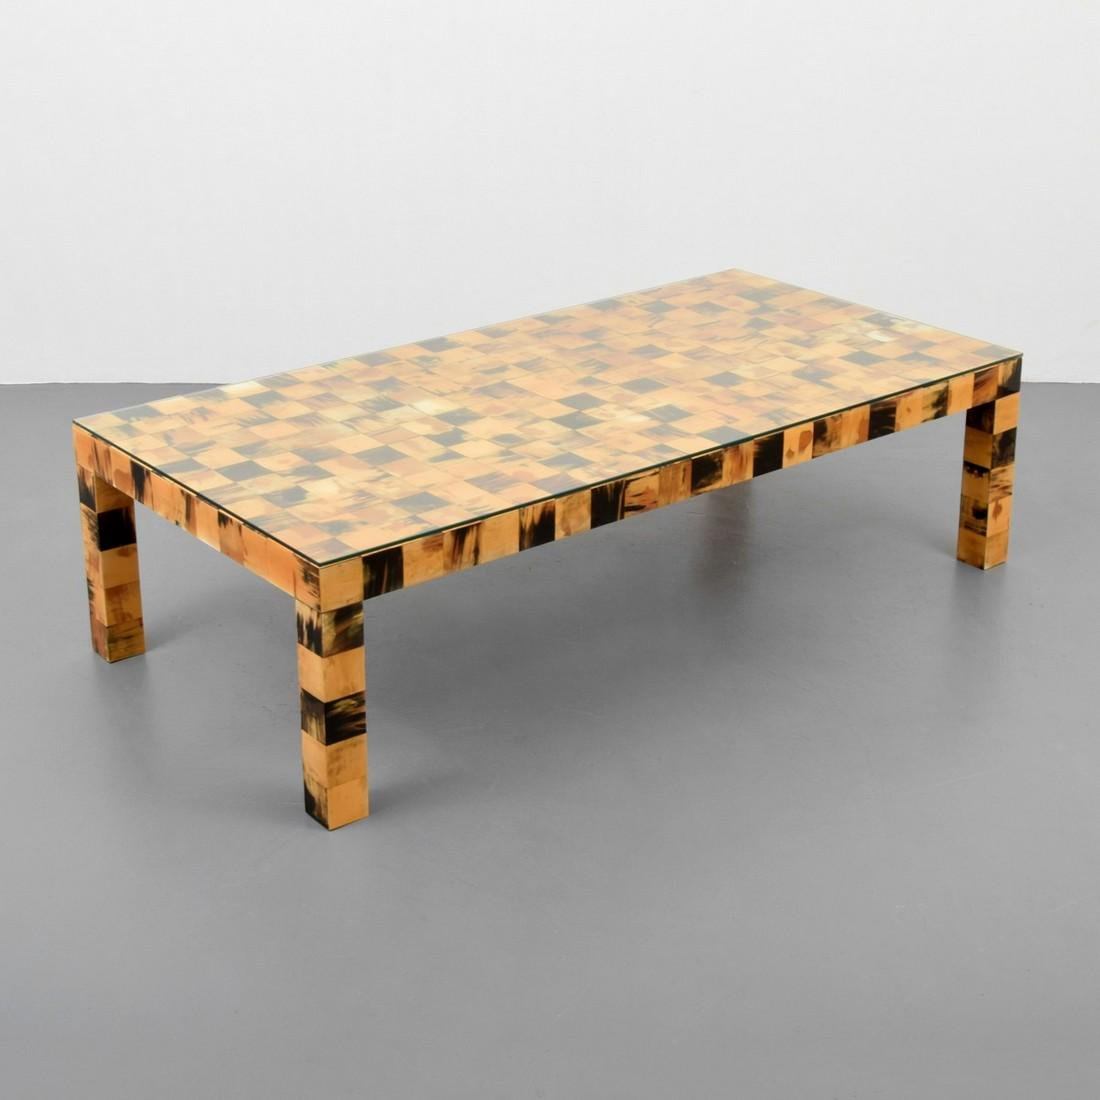 Tessellated Horn Coffee Table, Manner of Karl Springer